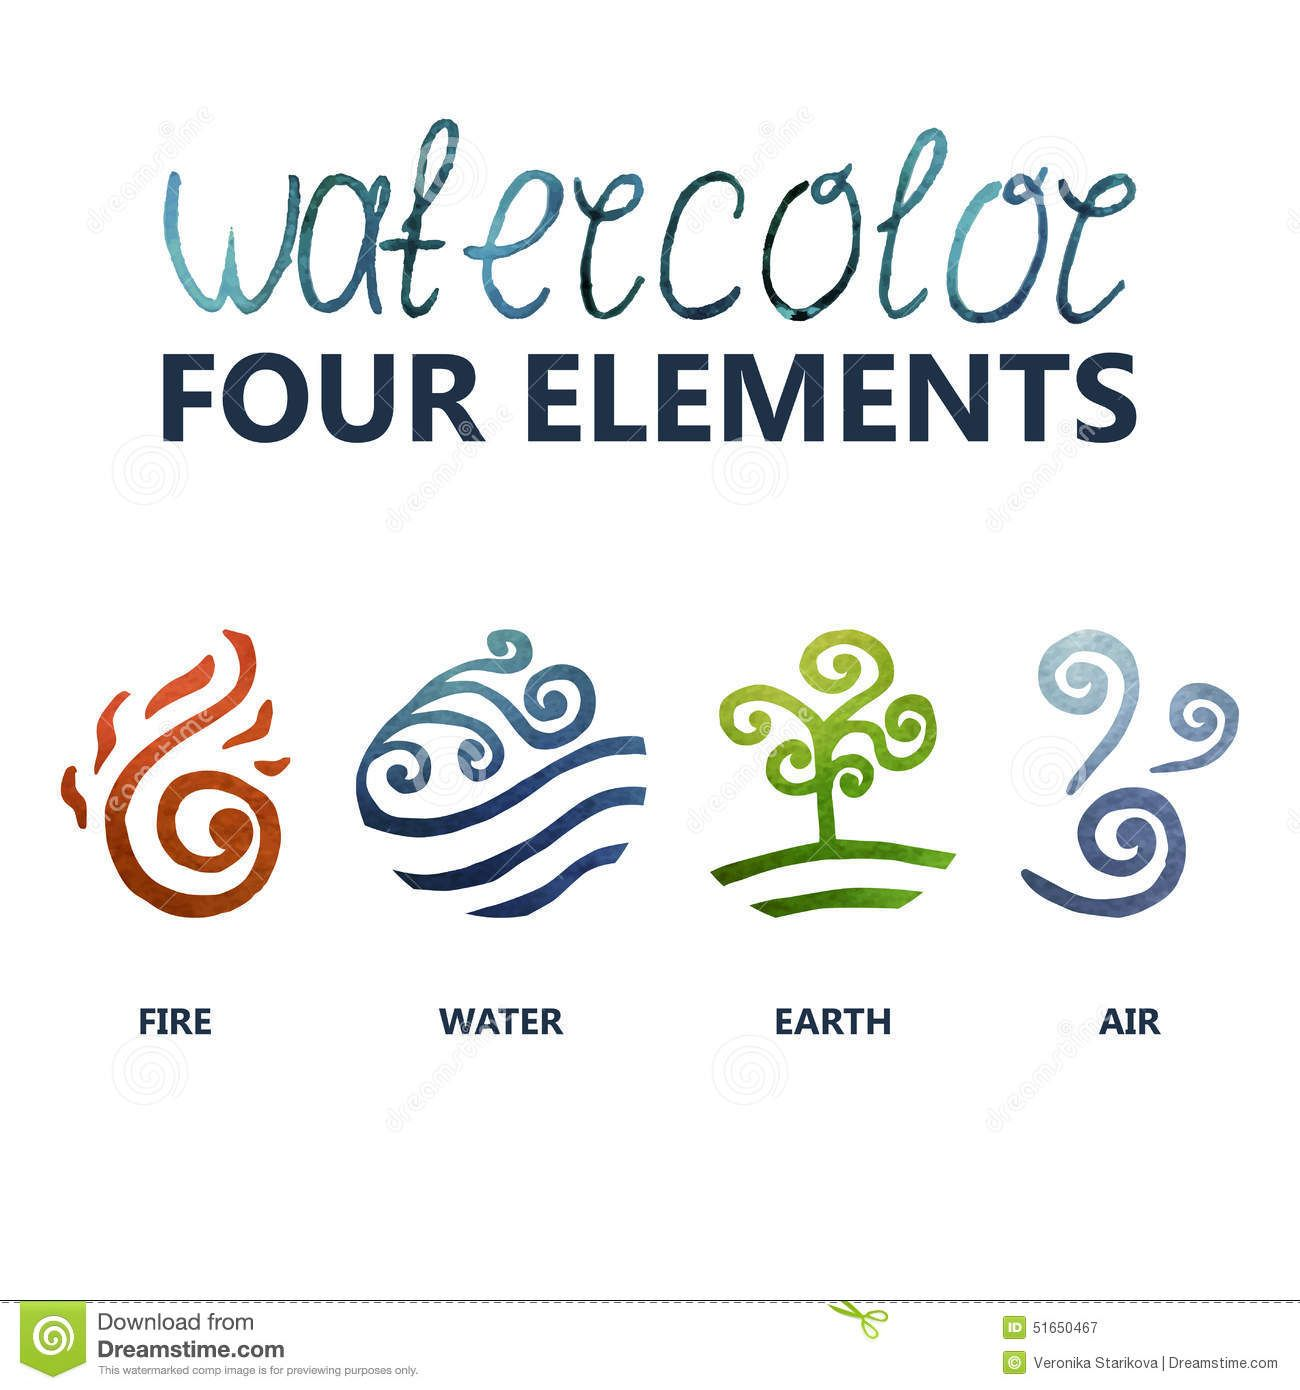 Illustration About Four Elements Watercolor Fire Water Earth